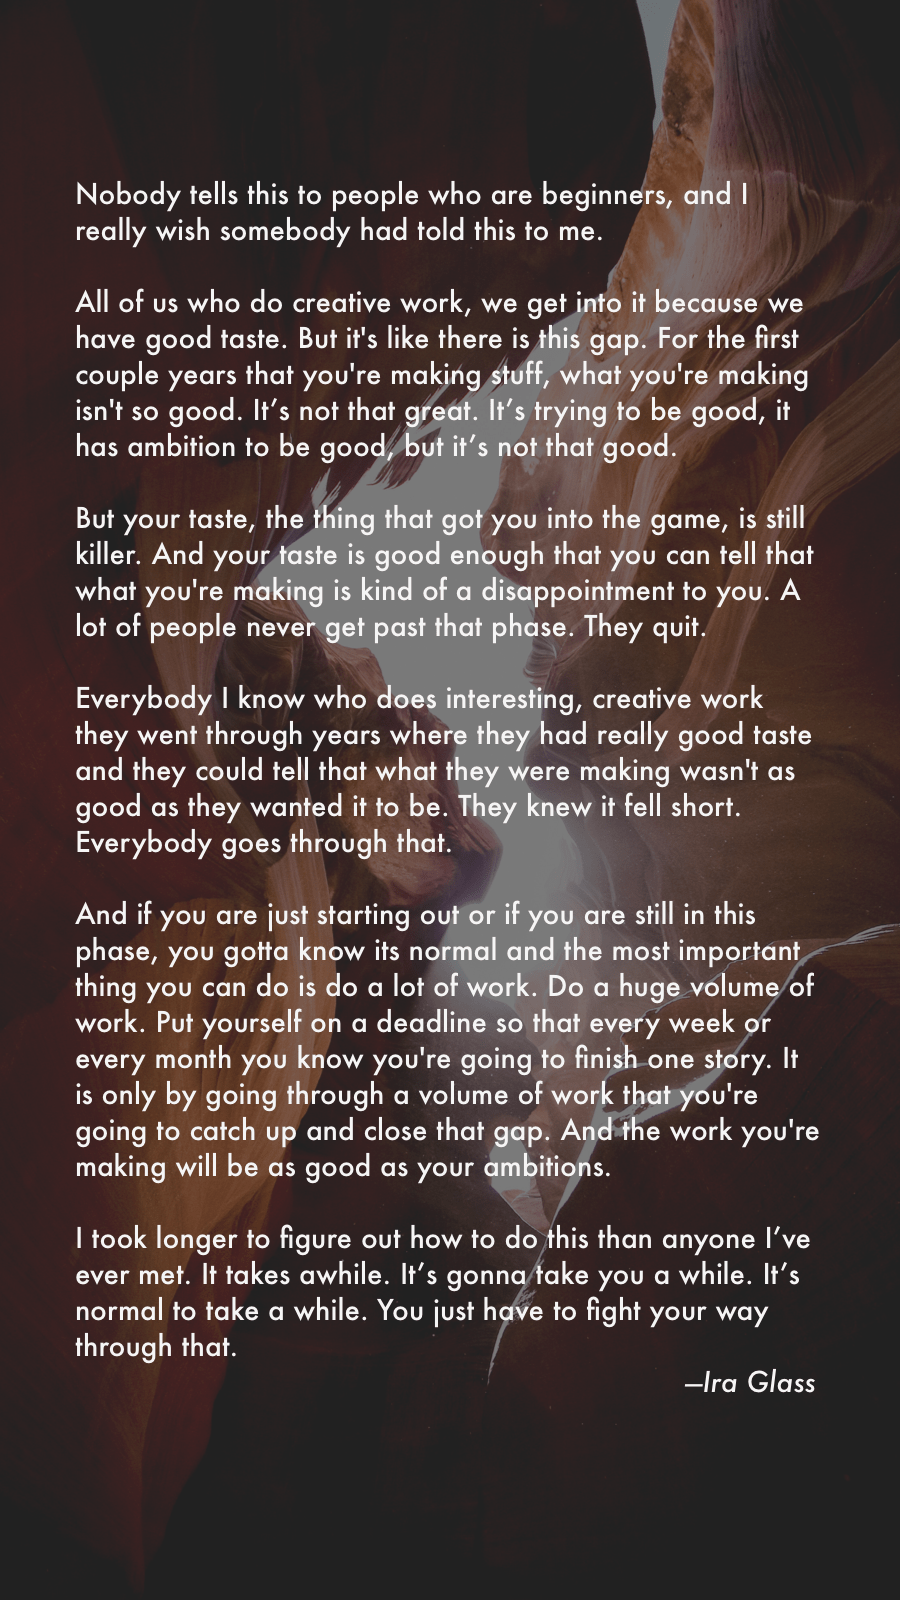 """And the work you're making will be as good as your ambitions."" – Ira Glass [900×1600]"